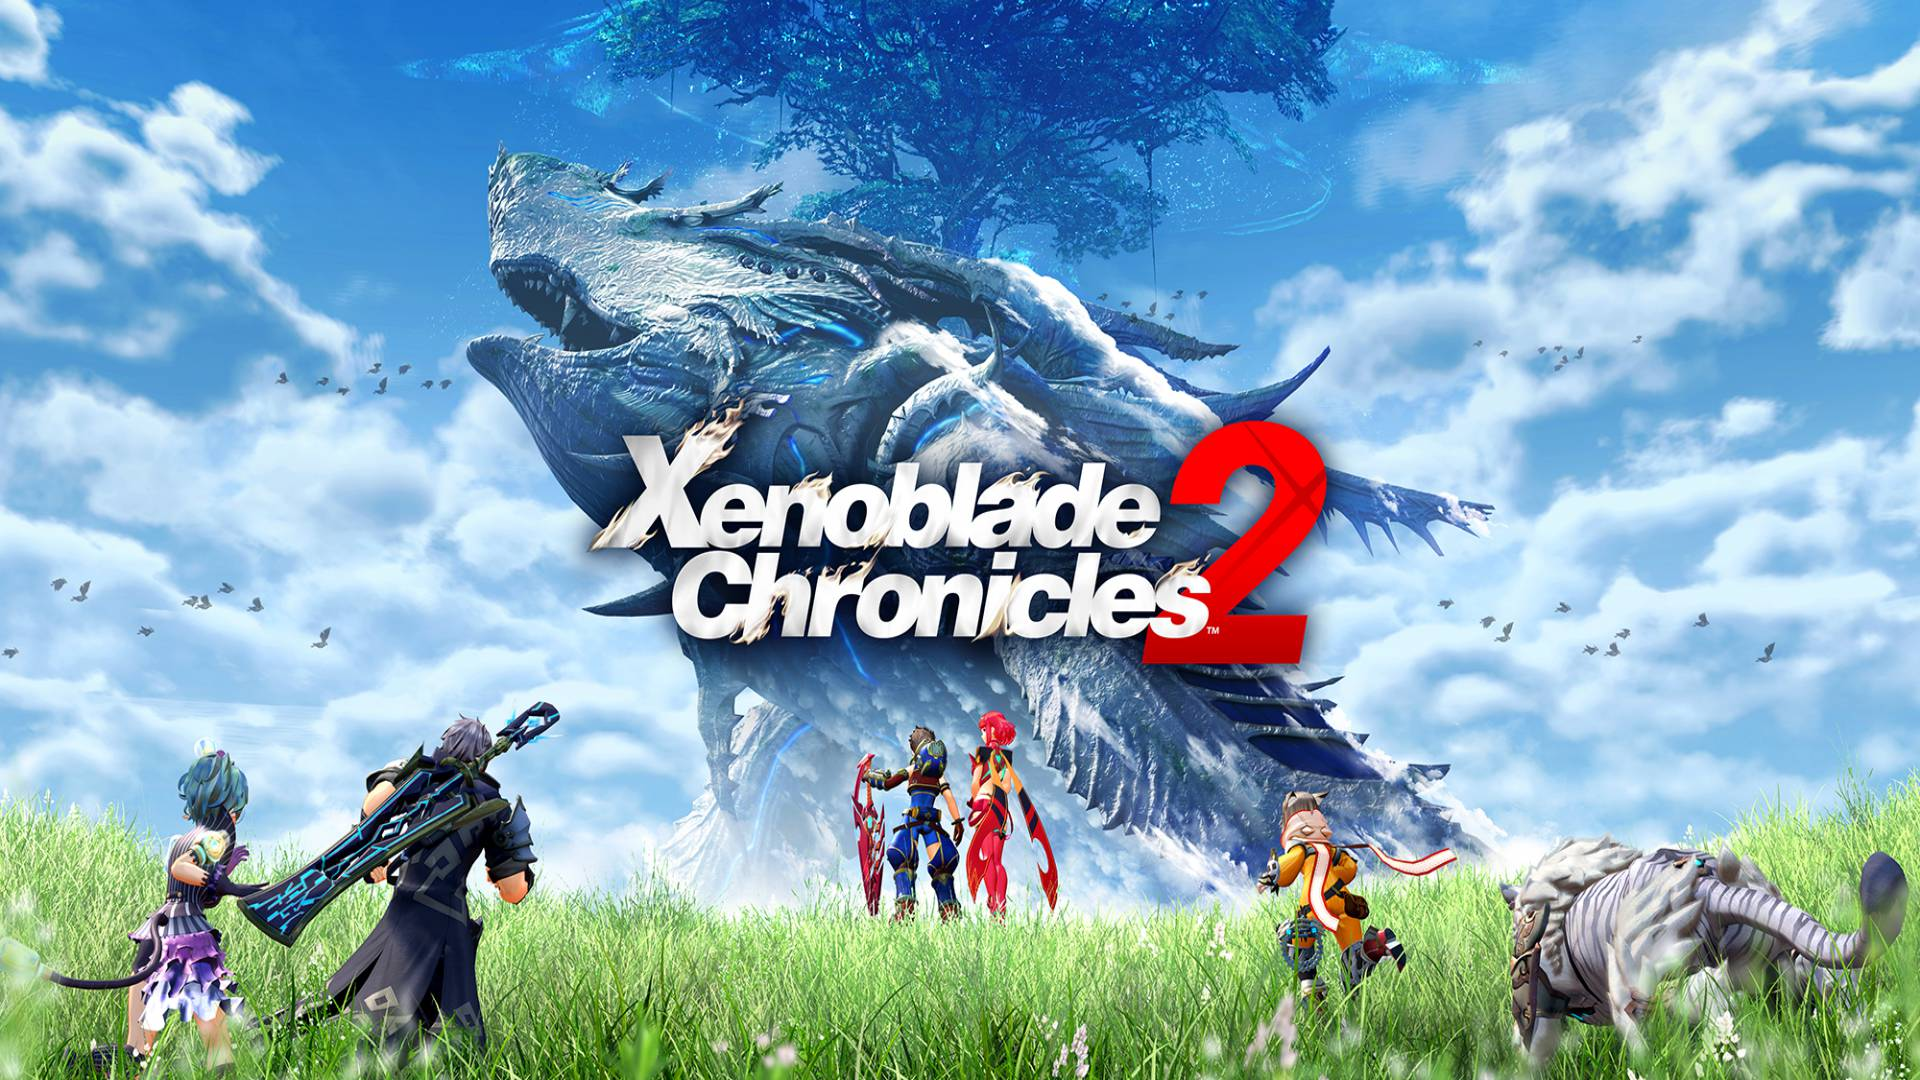 Xenoblade Chronicles 2 HD Wallpaper Background Image 1920x1080 1920x1080